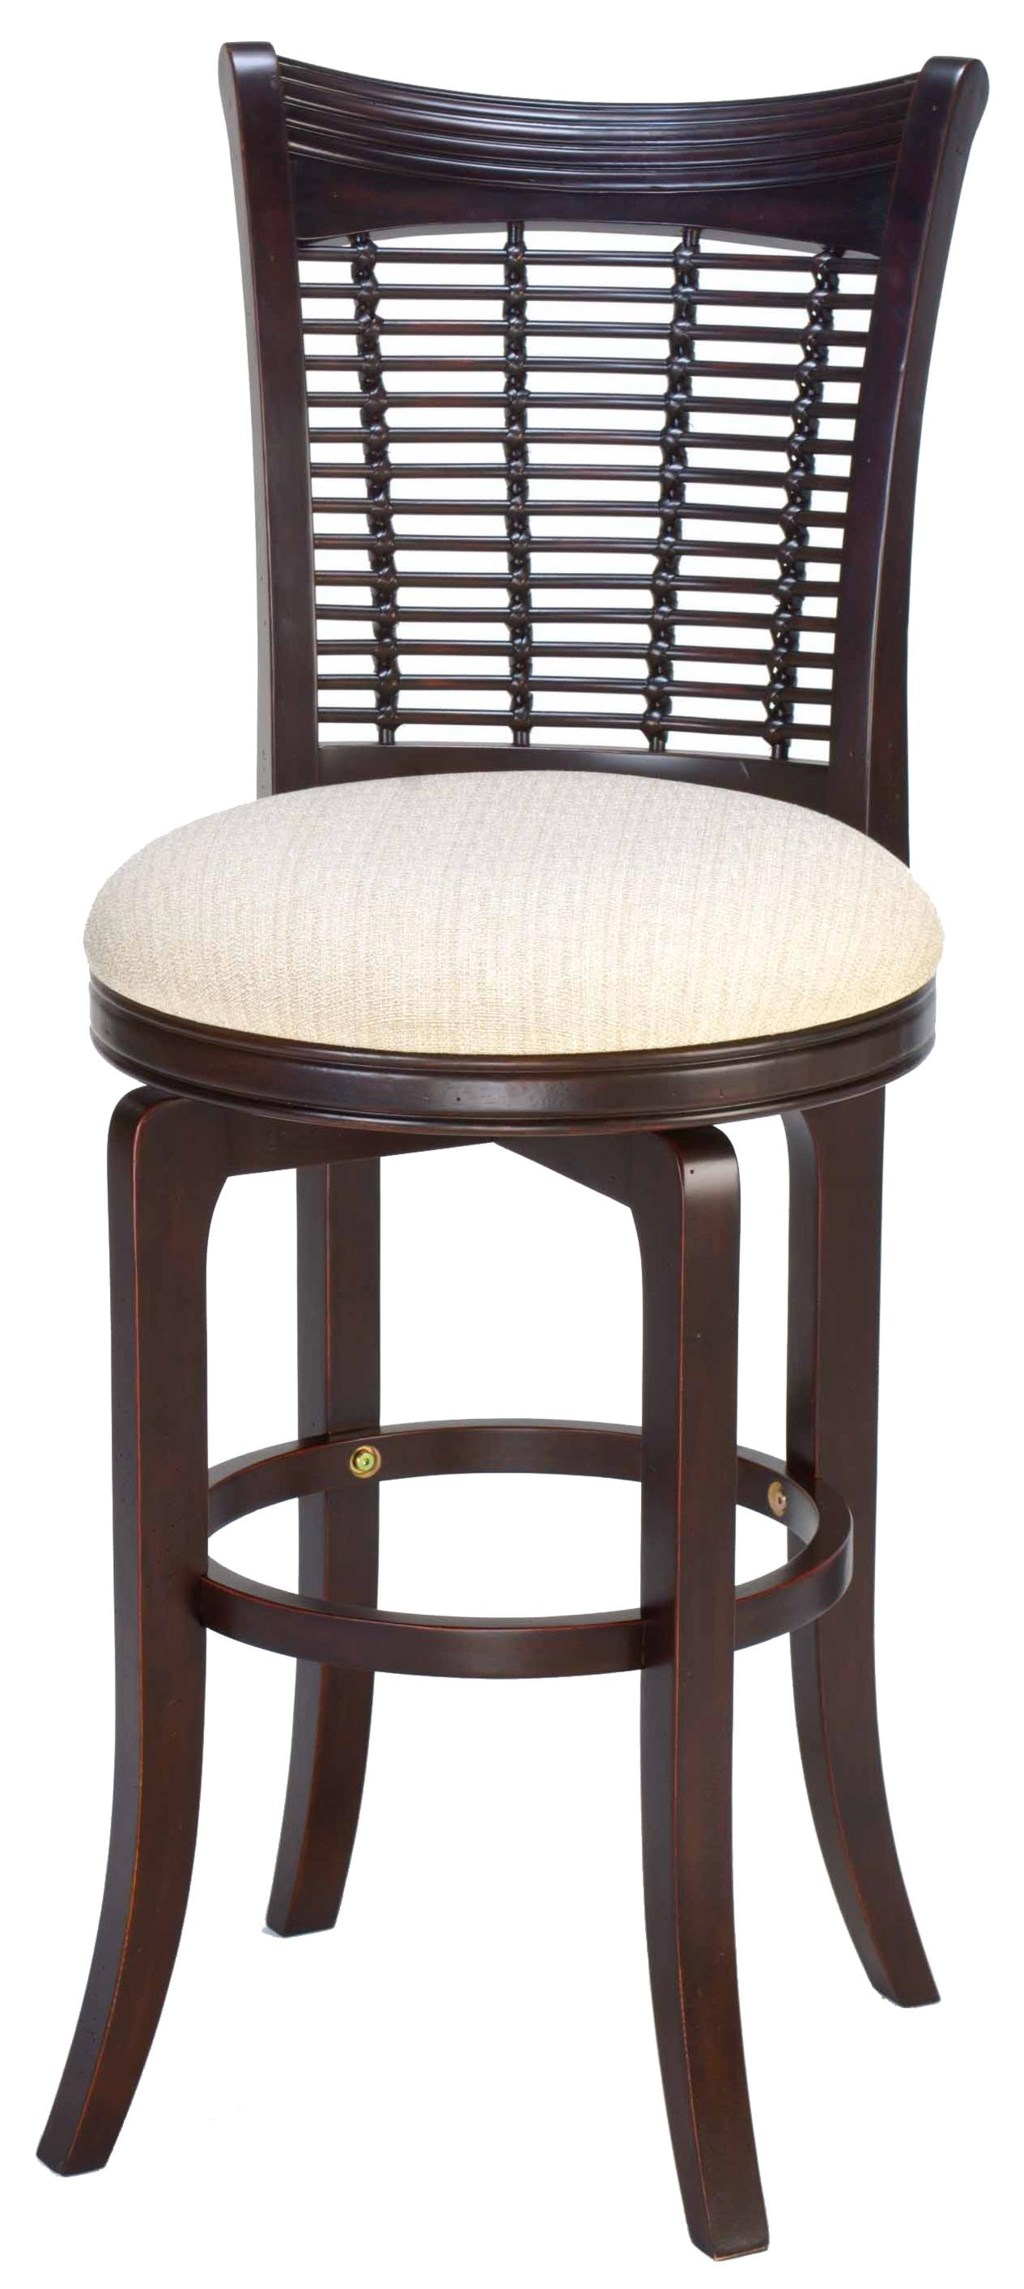 Hillsdale Wood Stools 24 Counter Height Bayberry Wicker Swivel